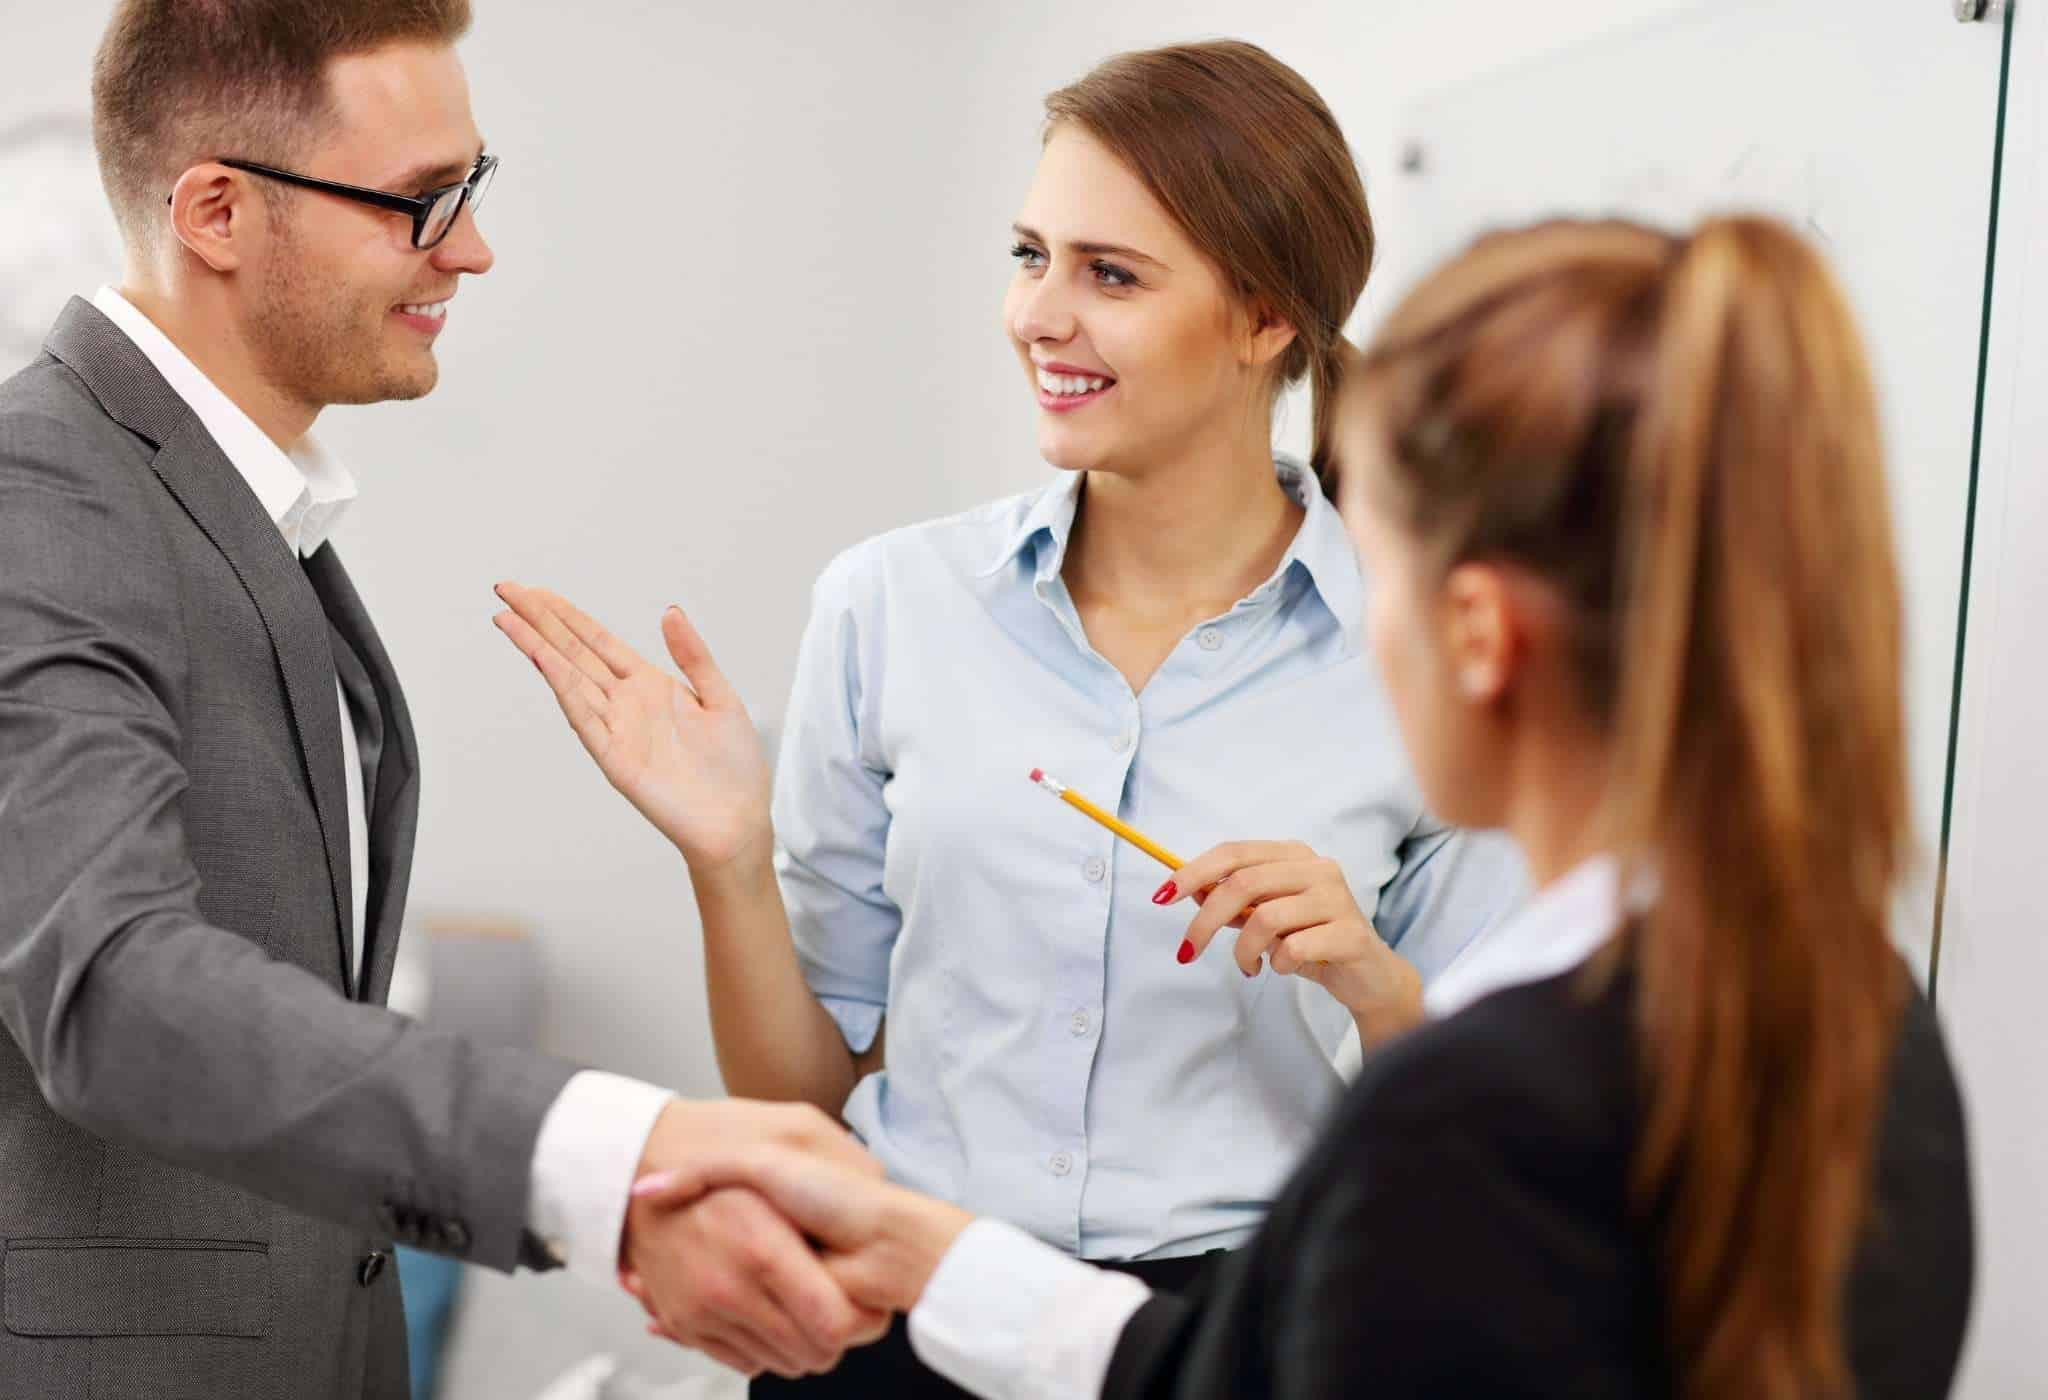 man being introduced knows how to talk to women